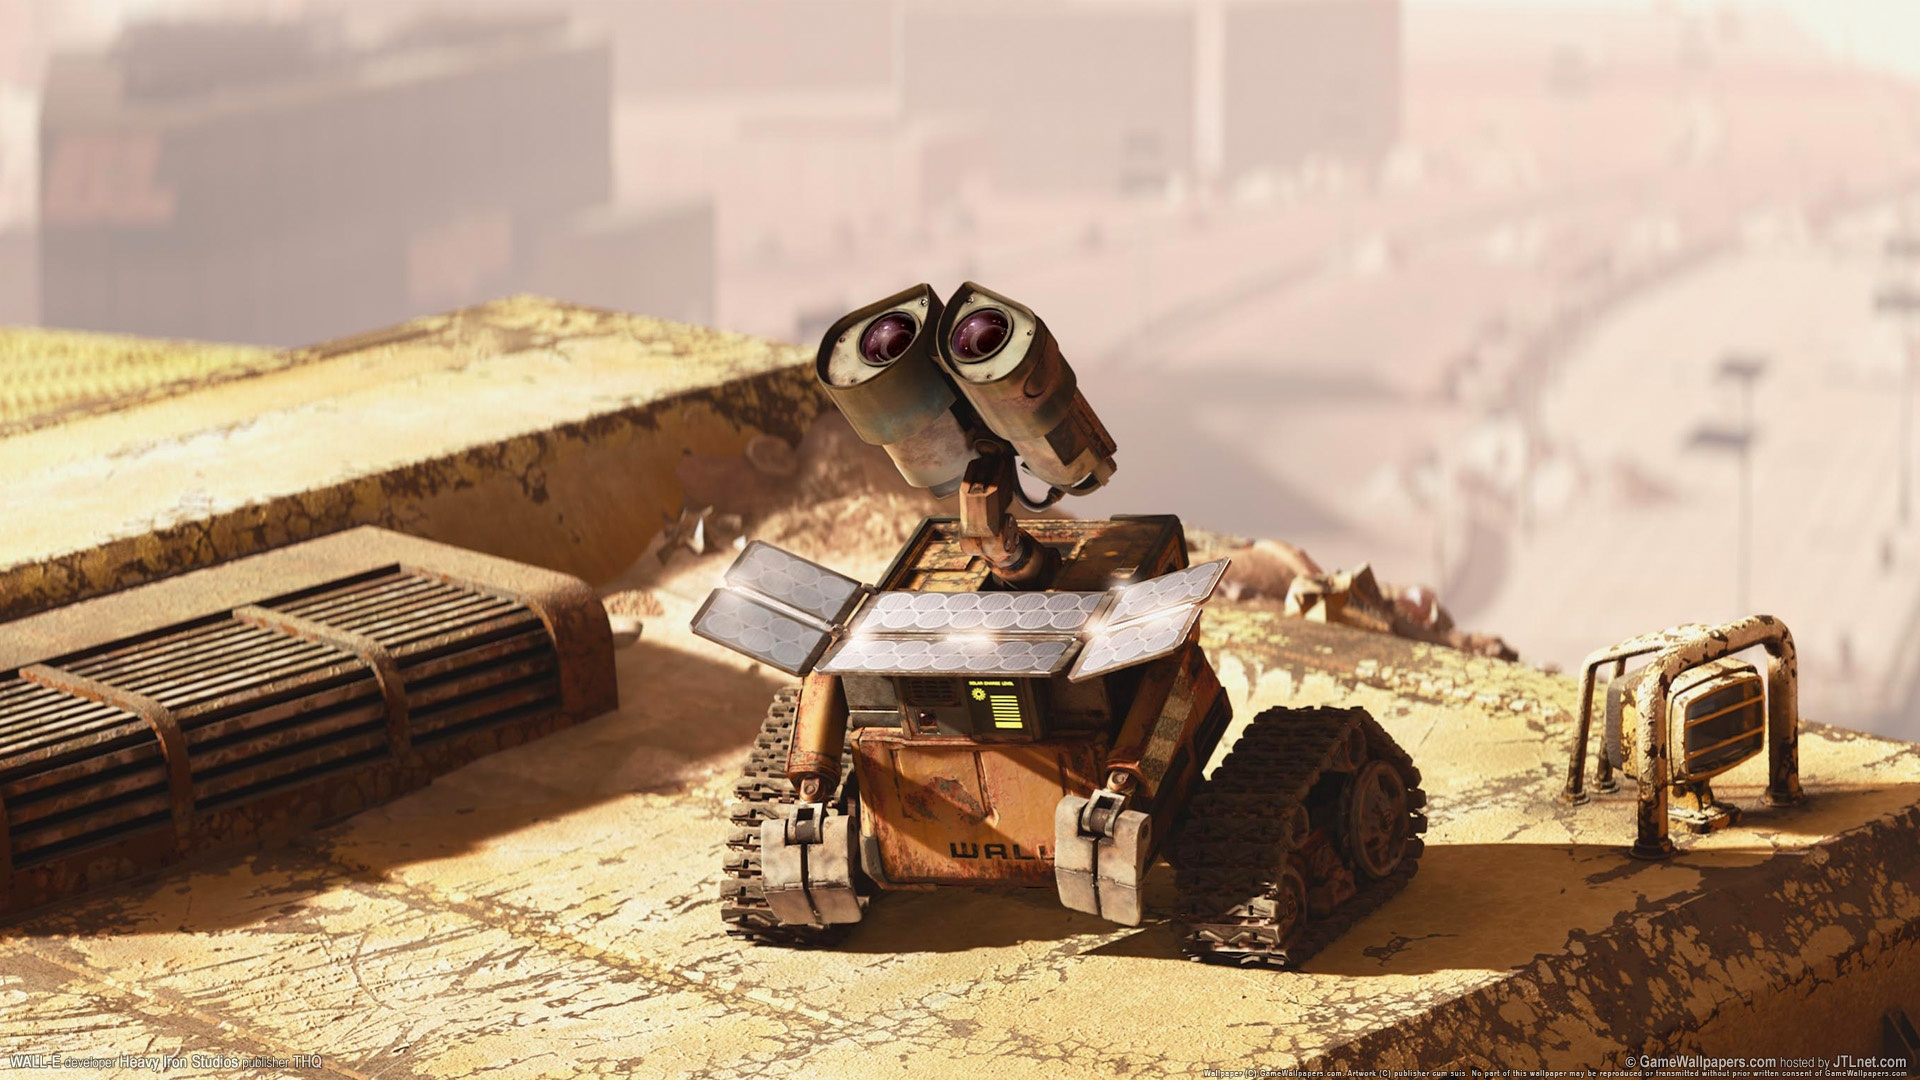 Wall E Hd 1080p Wallpapers In Jpg Format For Free Download